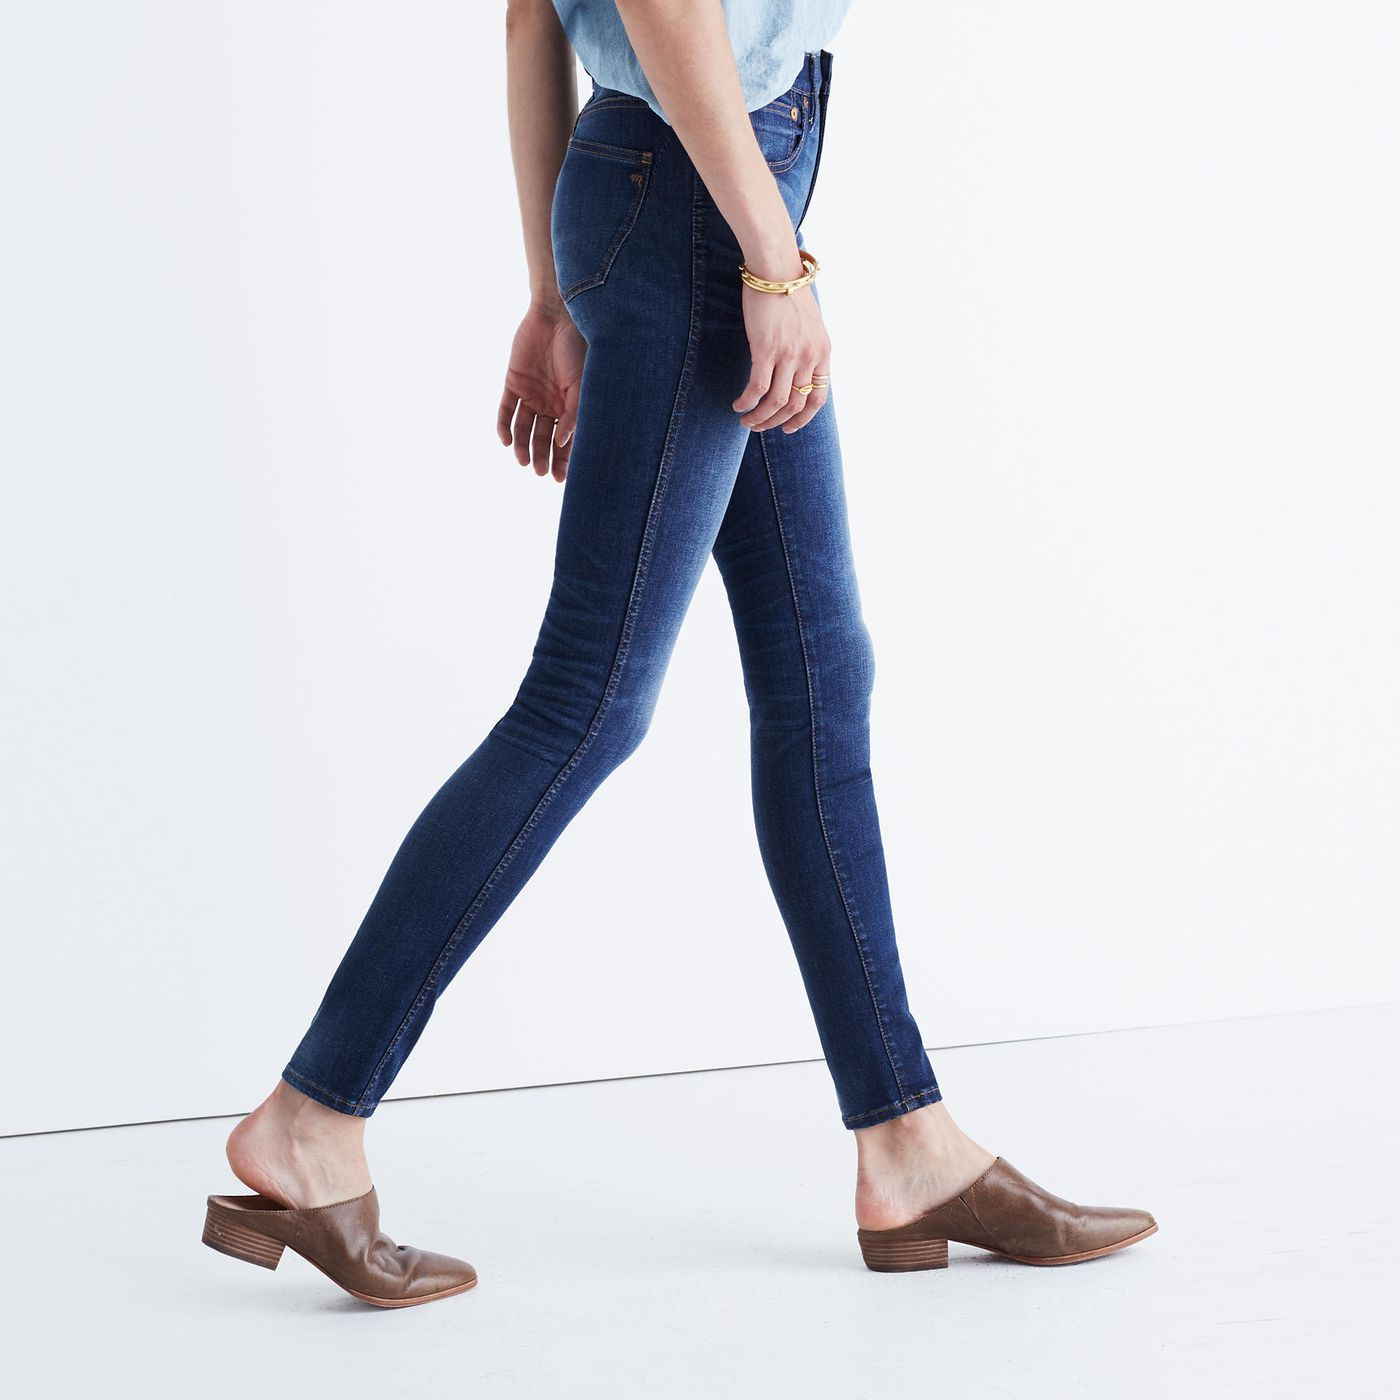 79874ec568841 Where to Shop for Jeans If You re Tall - Racked